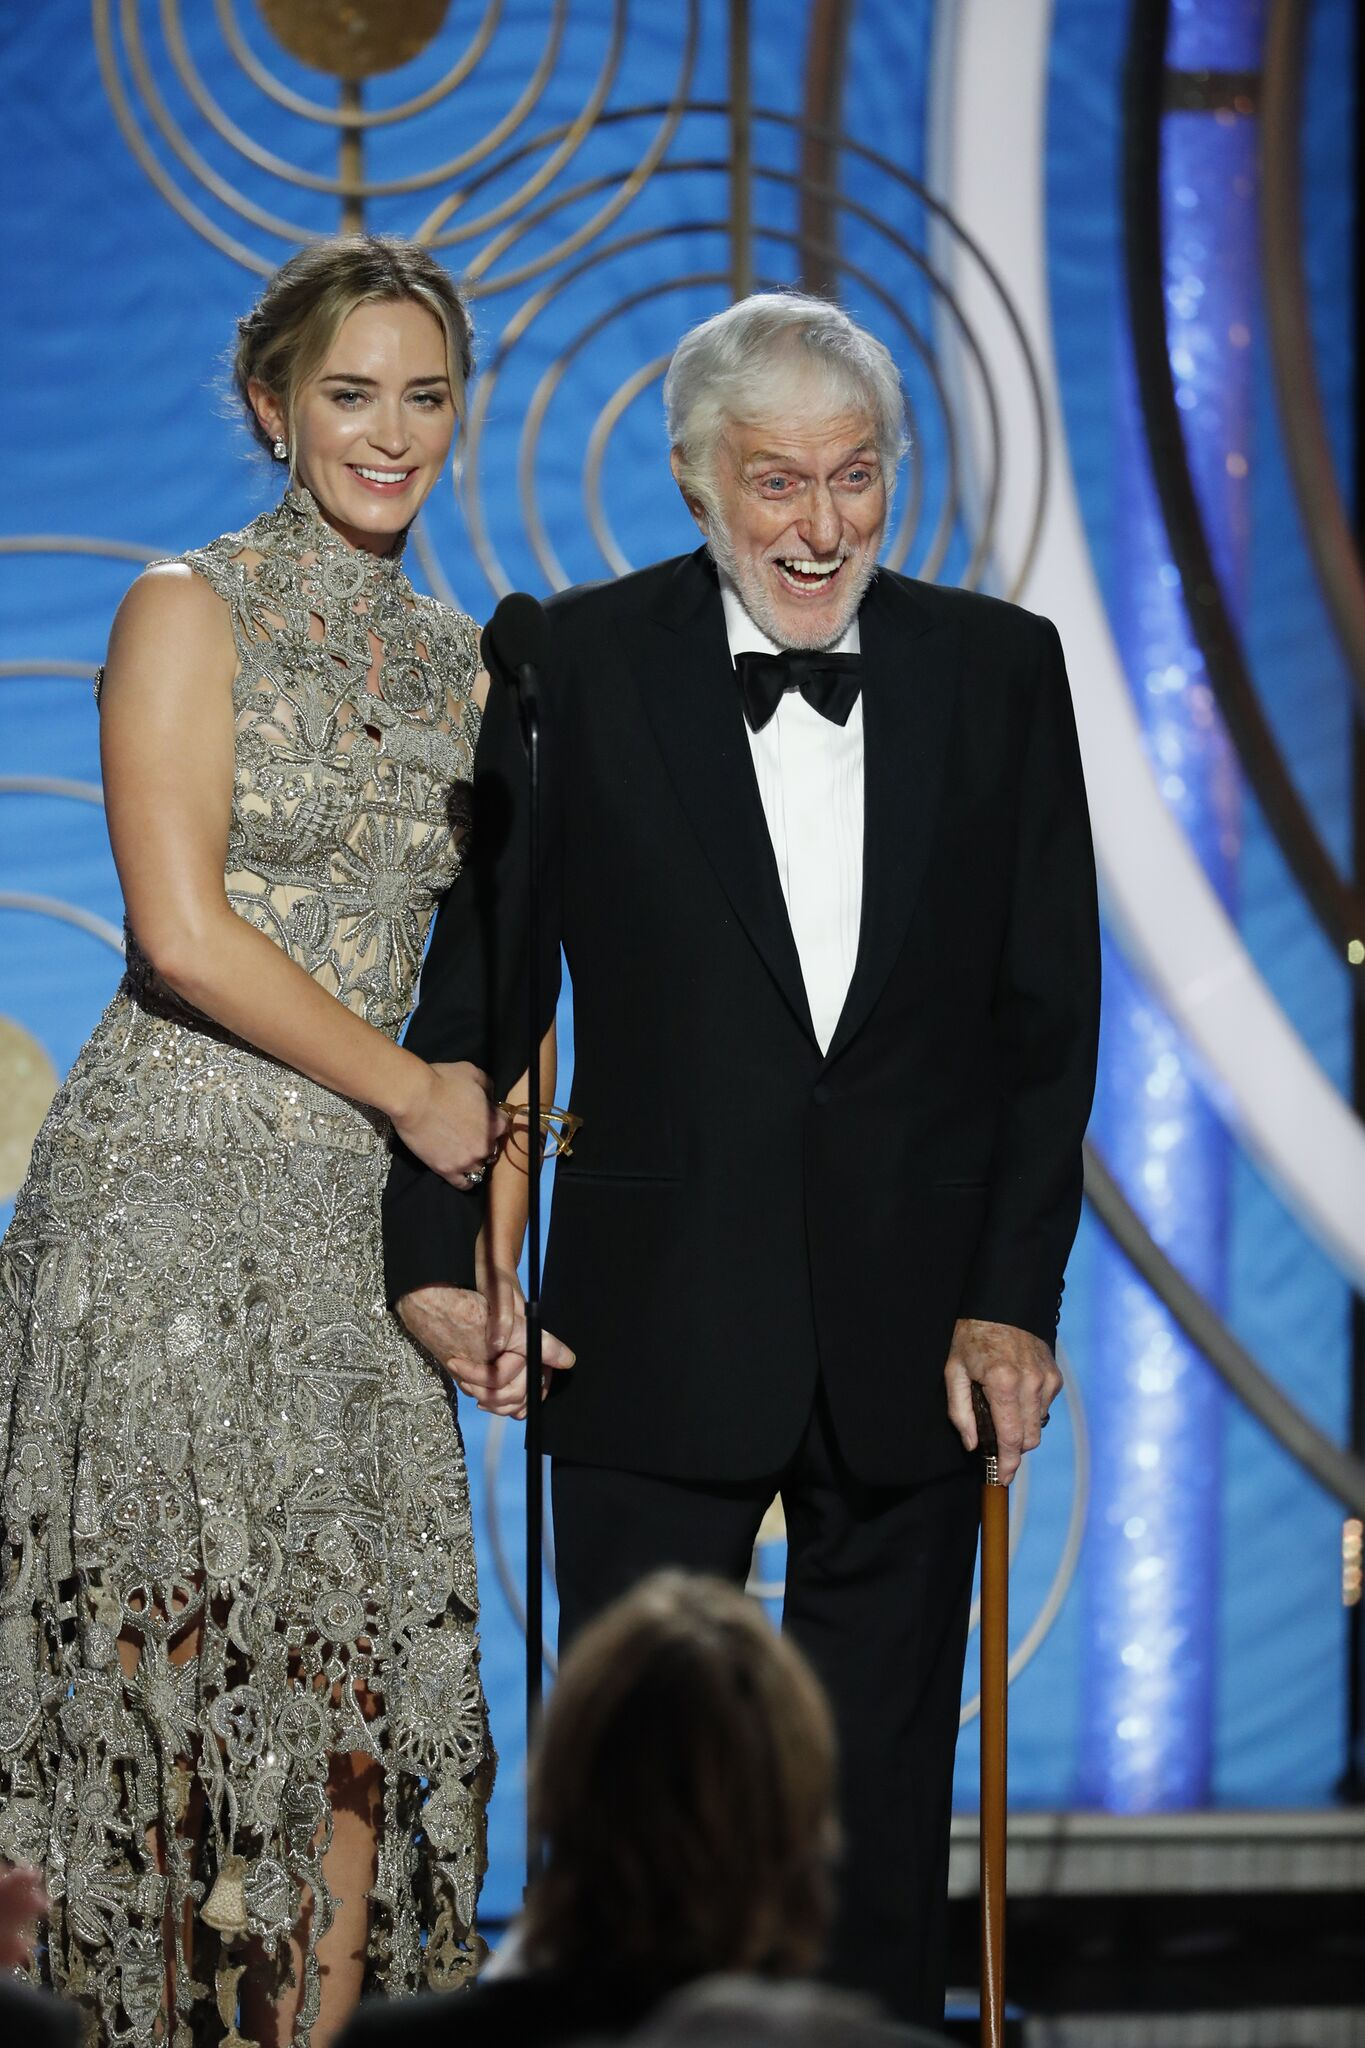 Emily Blunt and Dick Van Dyke speak onstage during the 76th Annual Golden Globe Awards at The Beverly Hilton Hotel | Getty Images